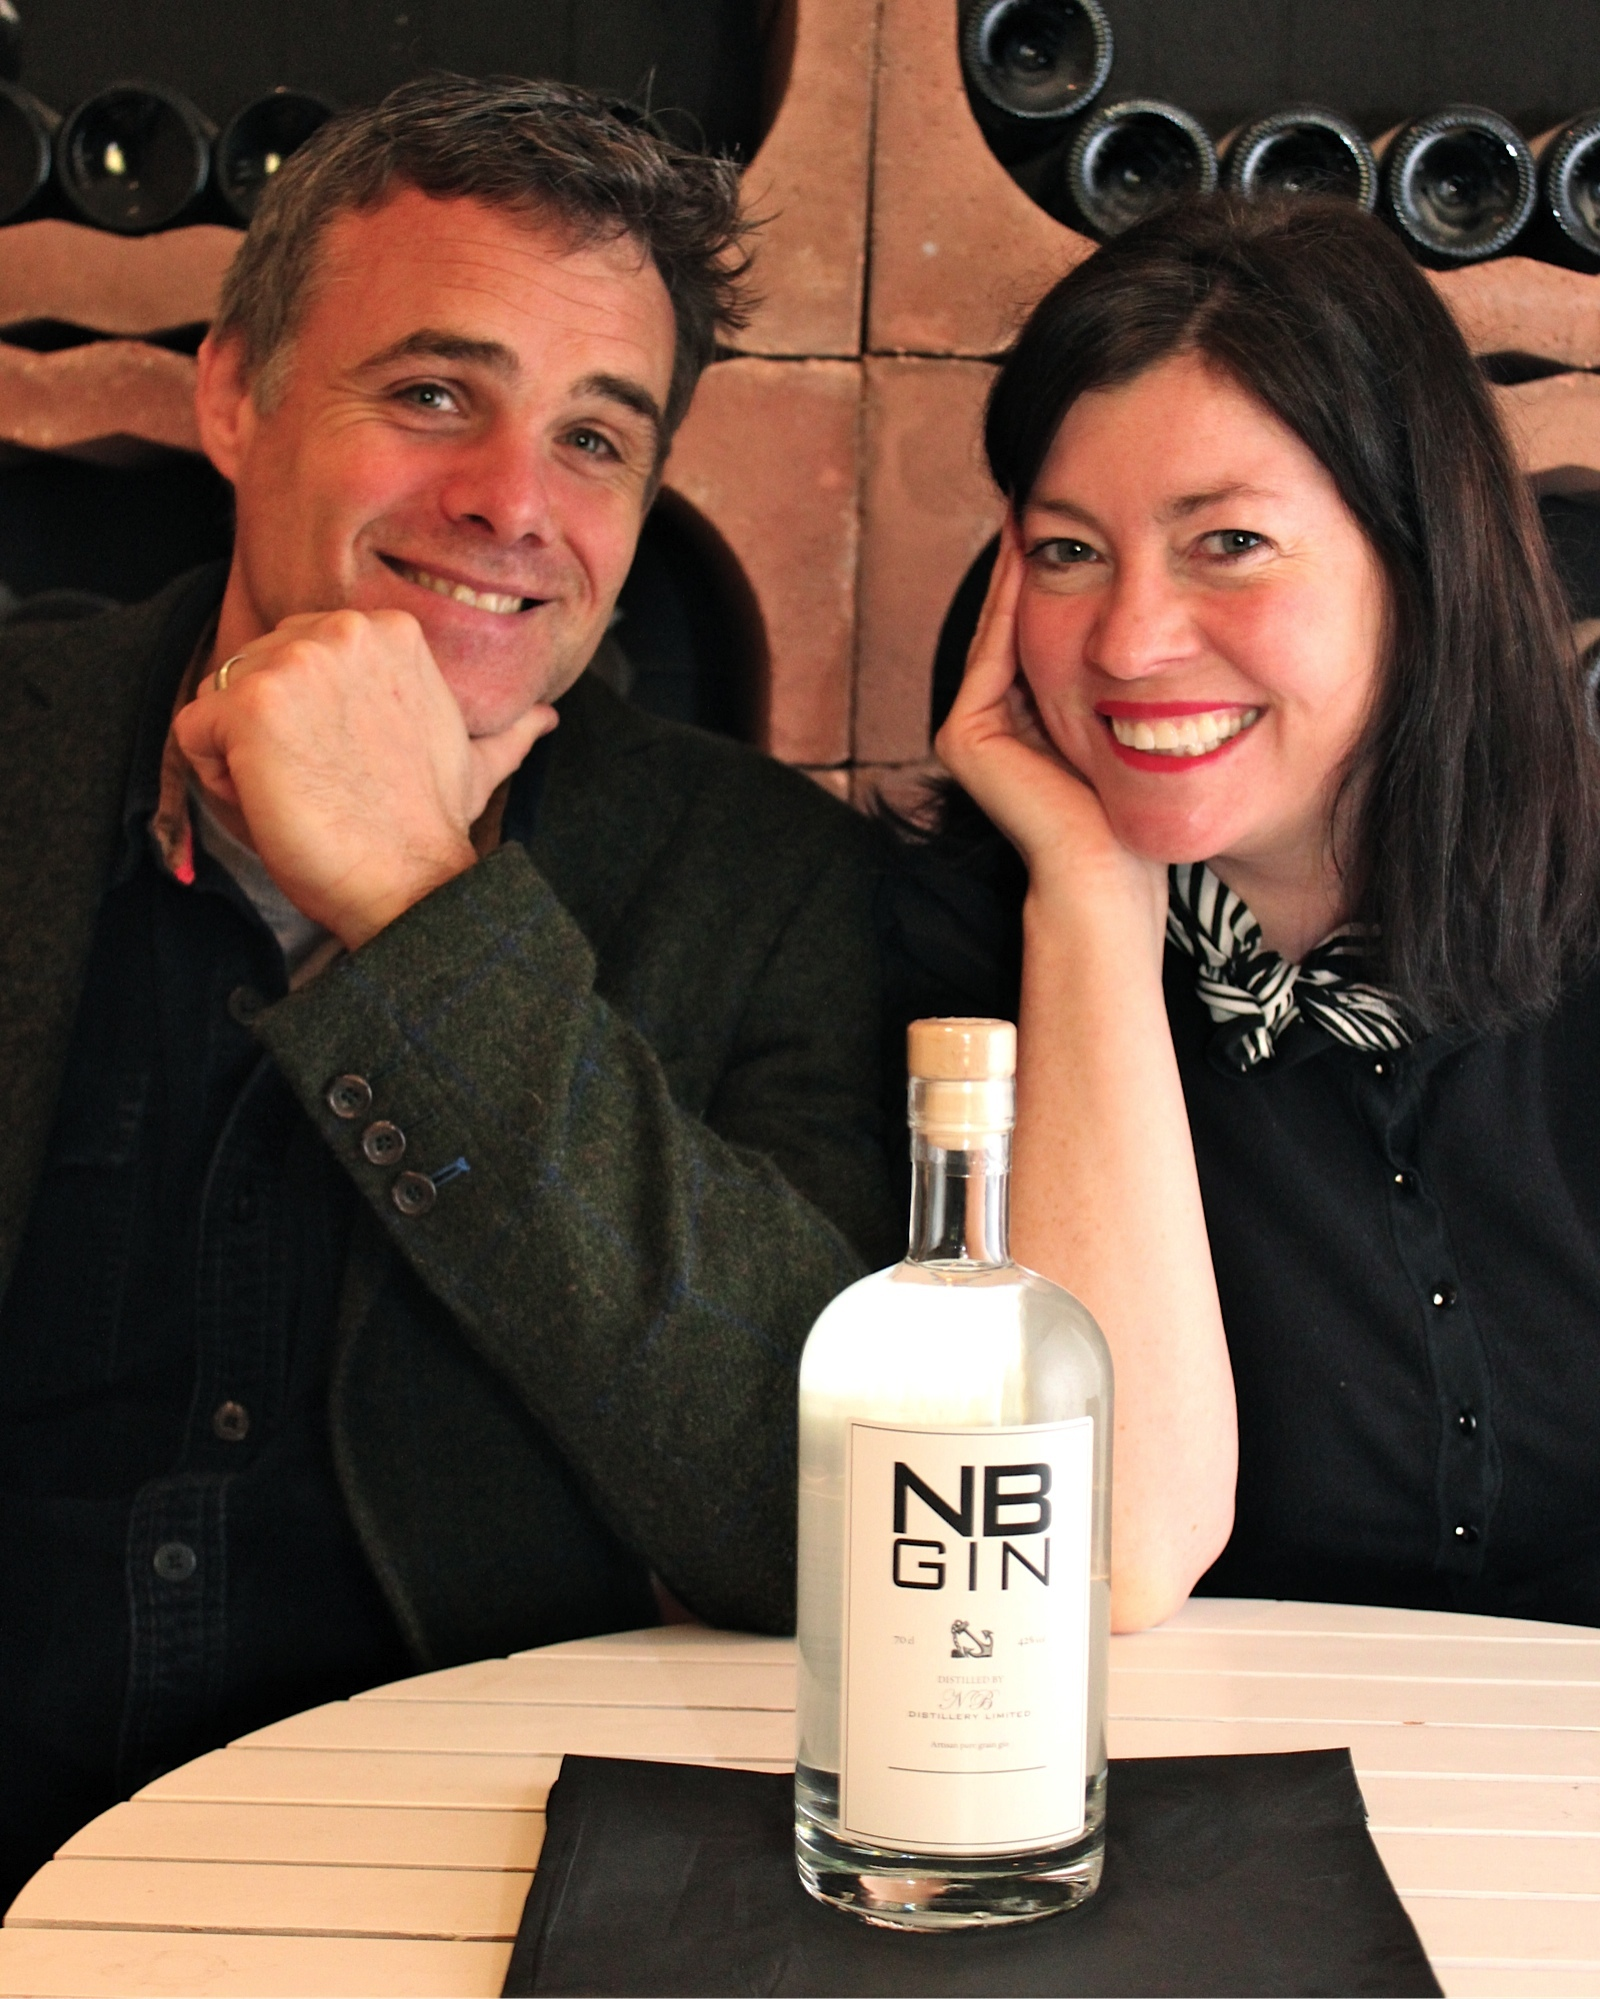 NB Gin founders, Steve and Viv Muir, are hoping for award success later this year